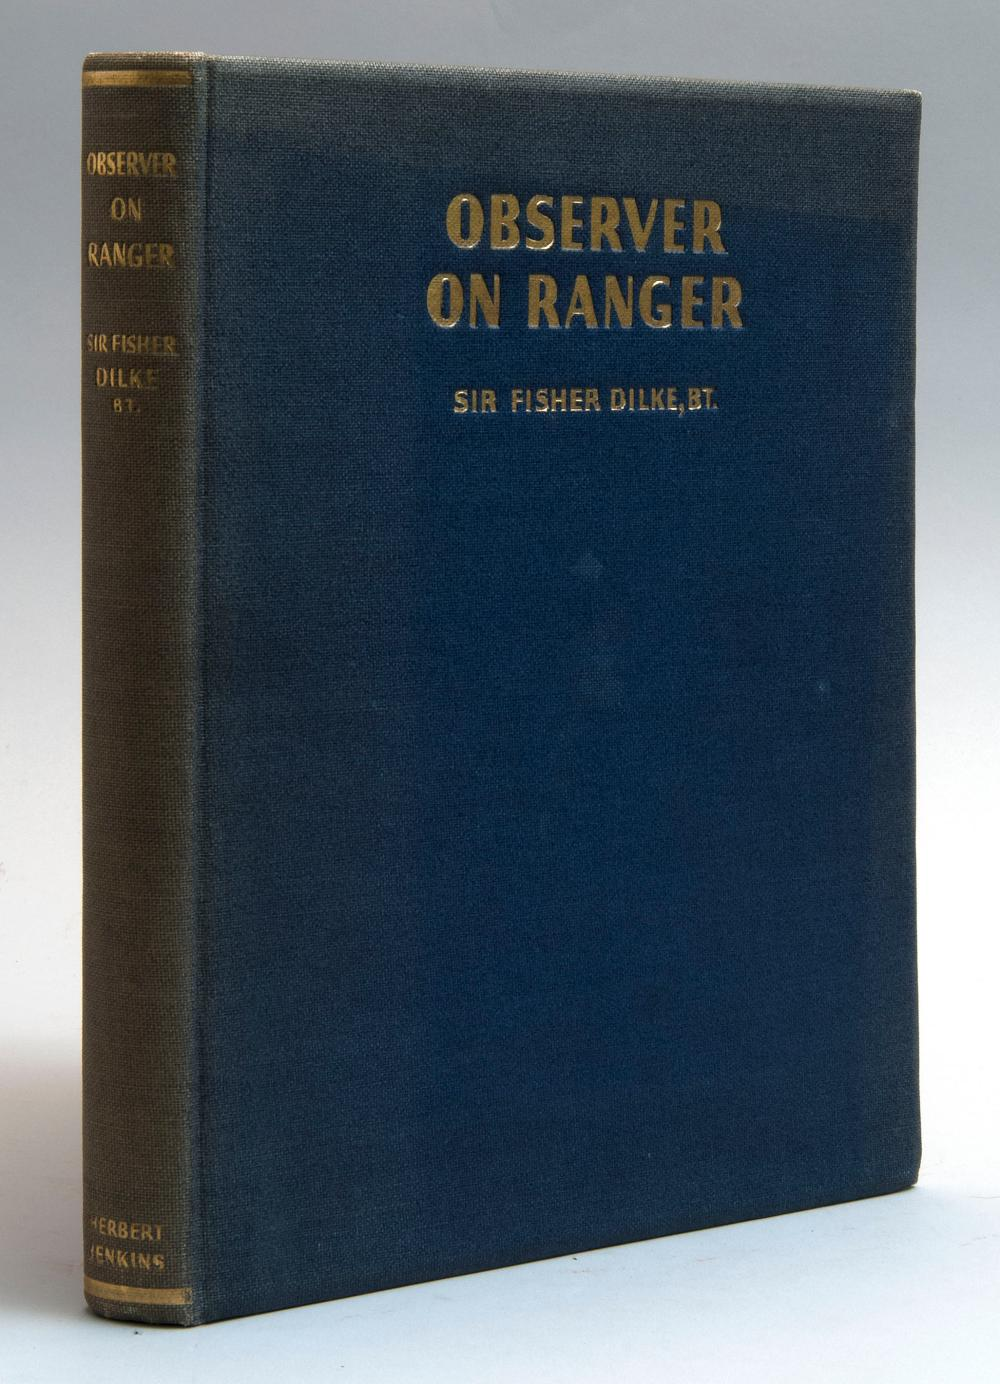 VOLUME ON YACHTING Observer on Ranger by Sir Fisher Dilke (London: Herbert Jenkins Limited, 1938). First printing. Illus. with black...